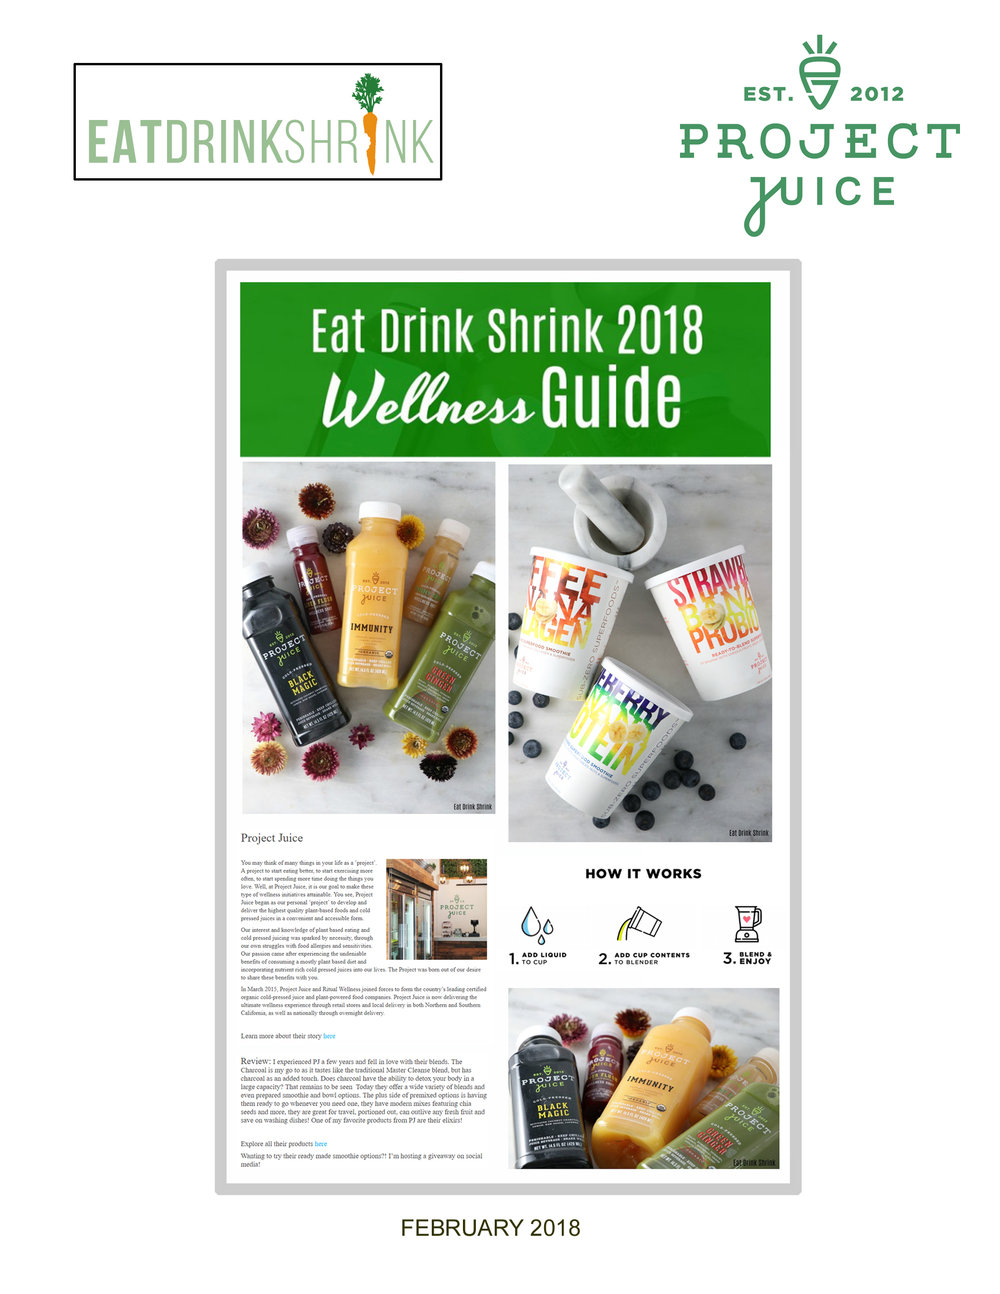 EATDRINKSHRINK_FEB2018.jpg